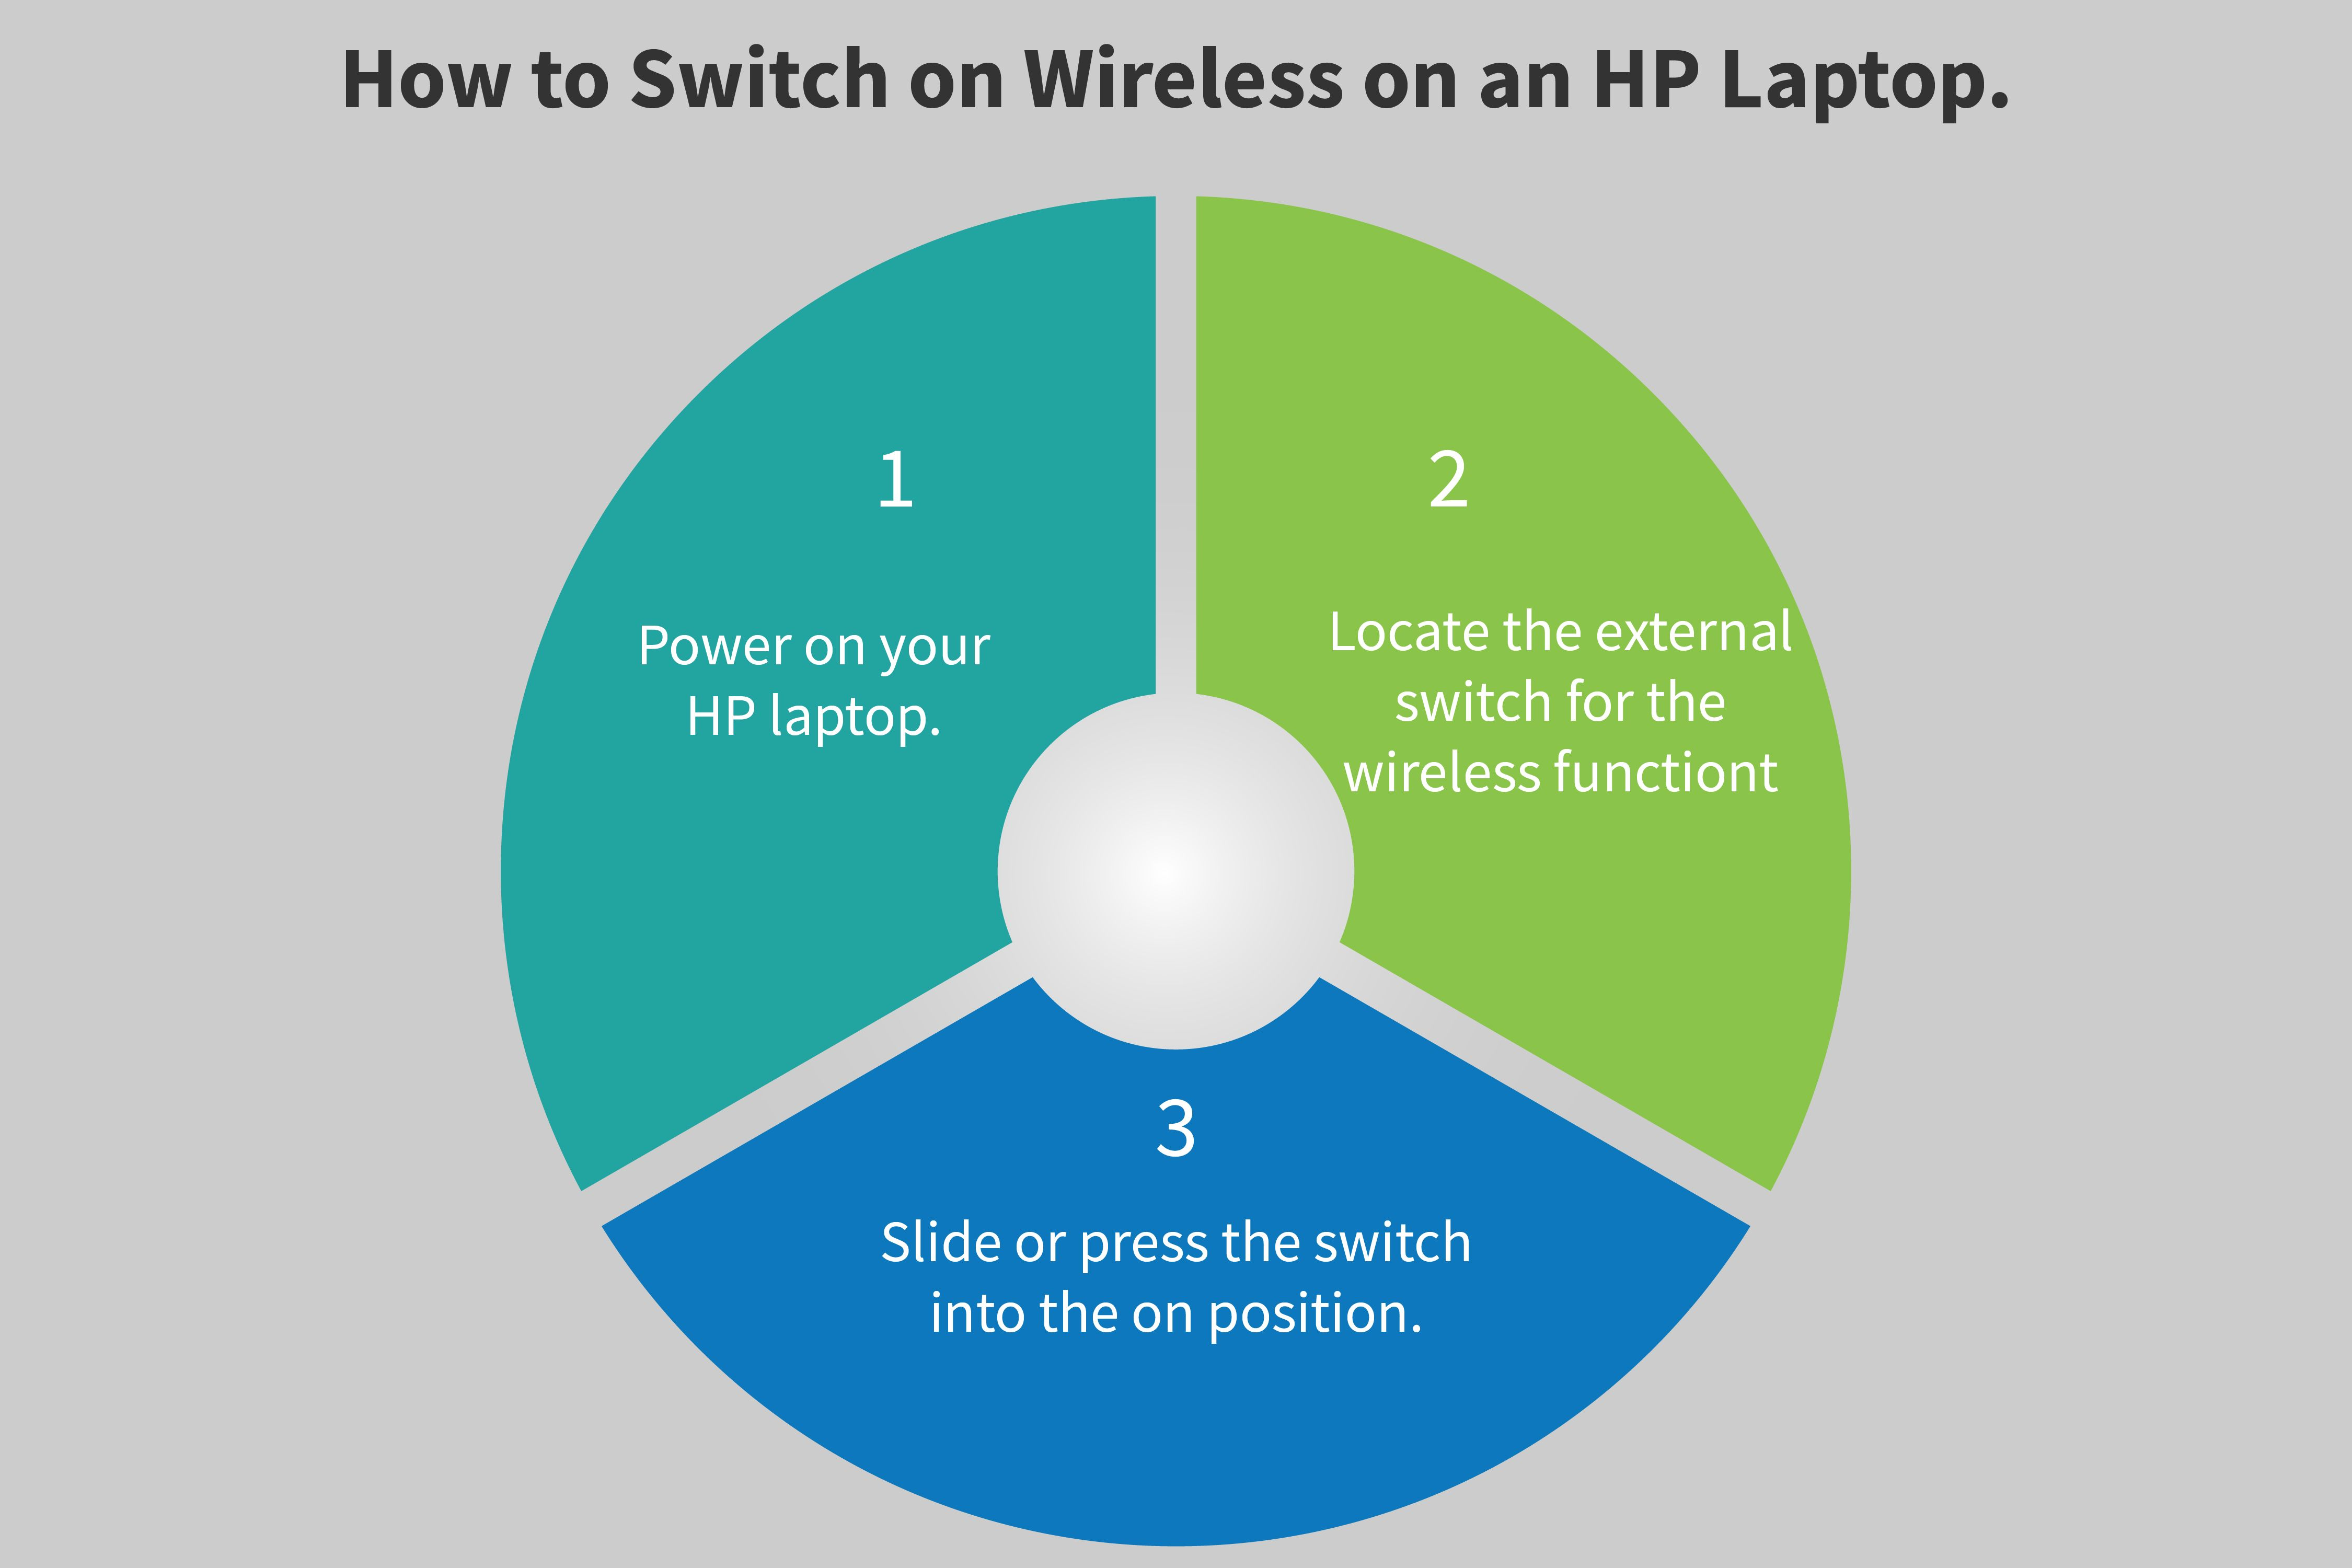 Complete Easy guidelines on how to switch on wireless on an